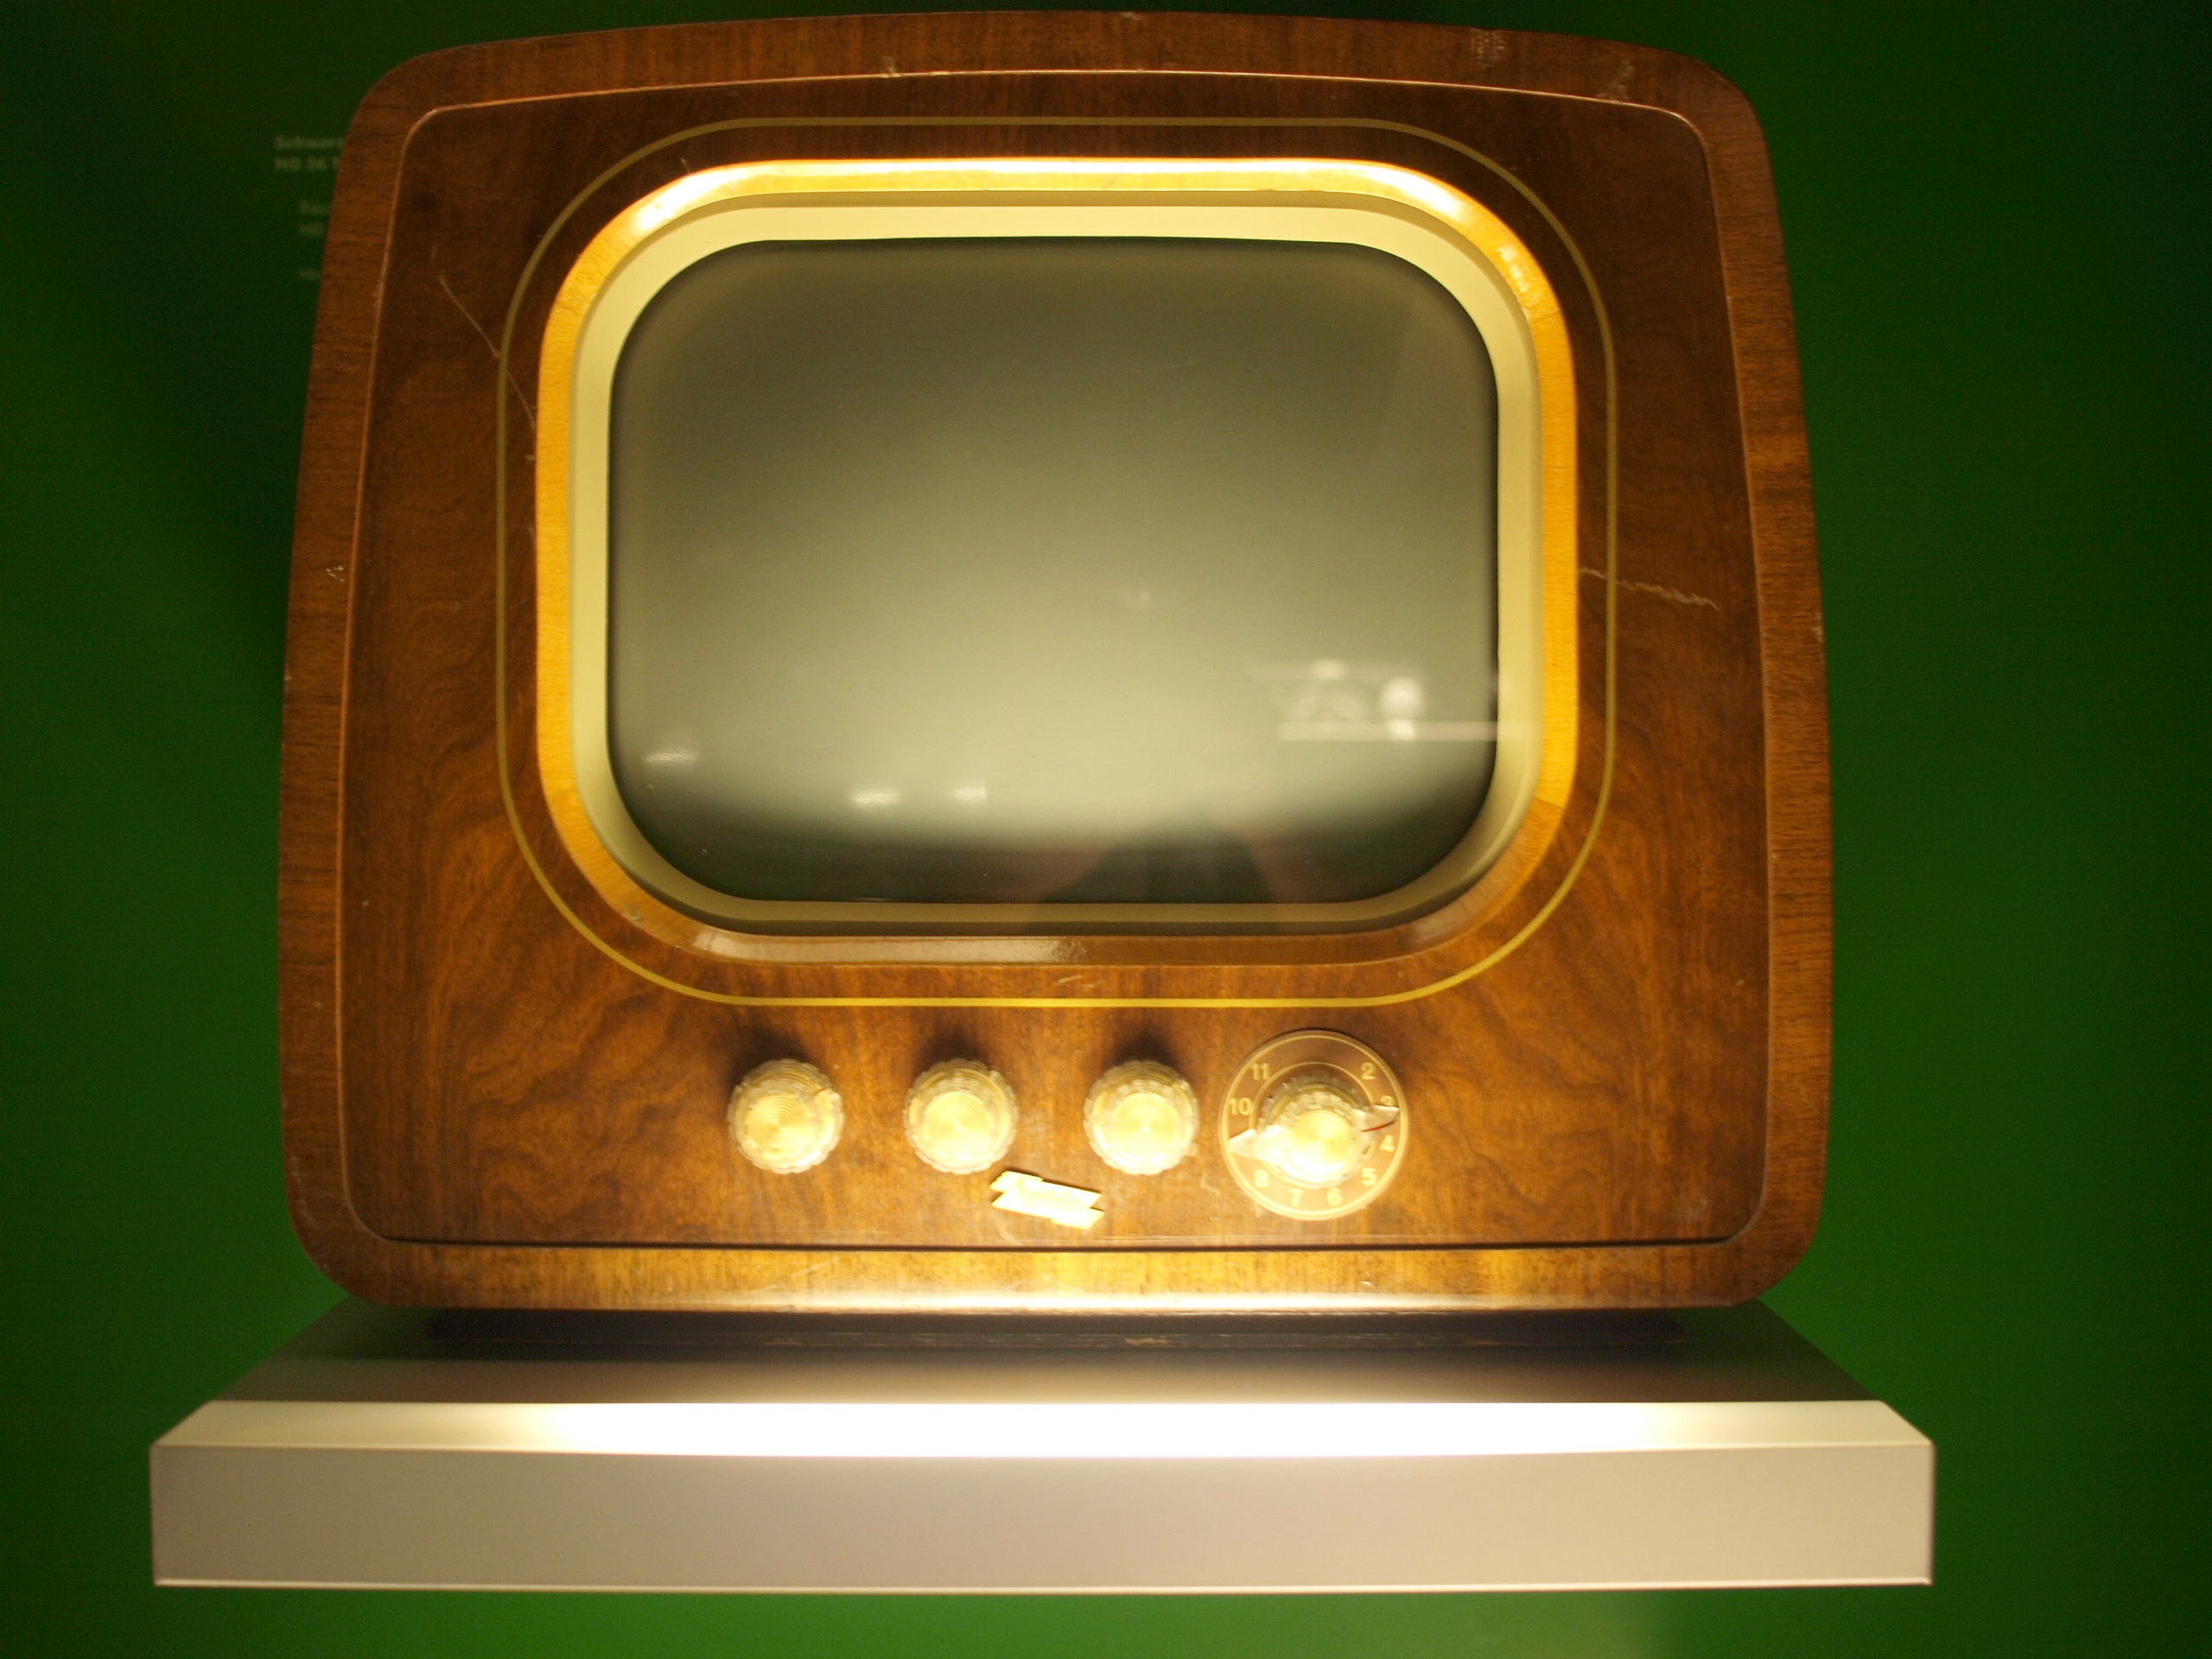 vintage television with four knobs